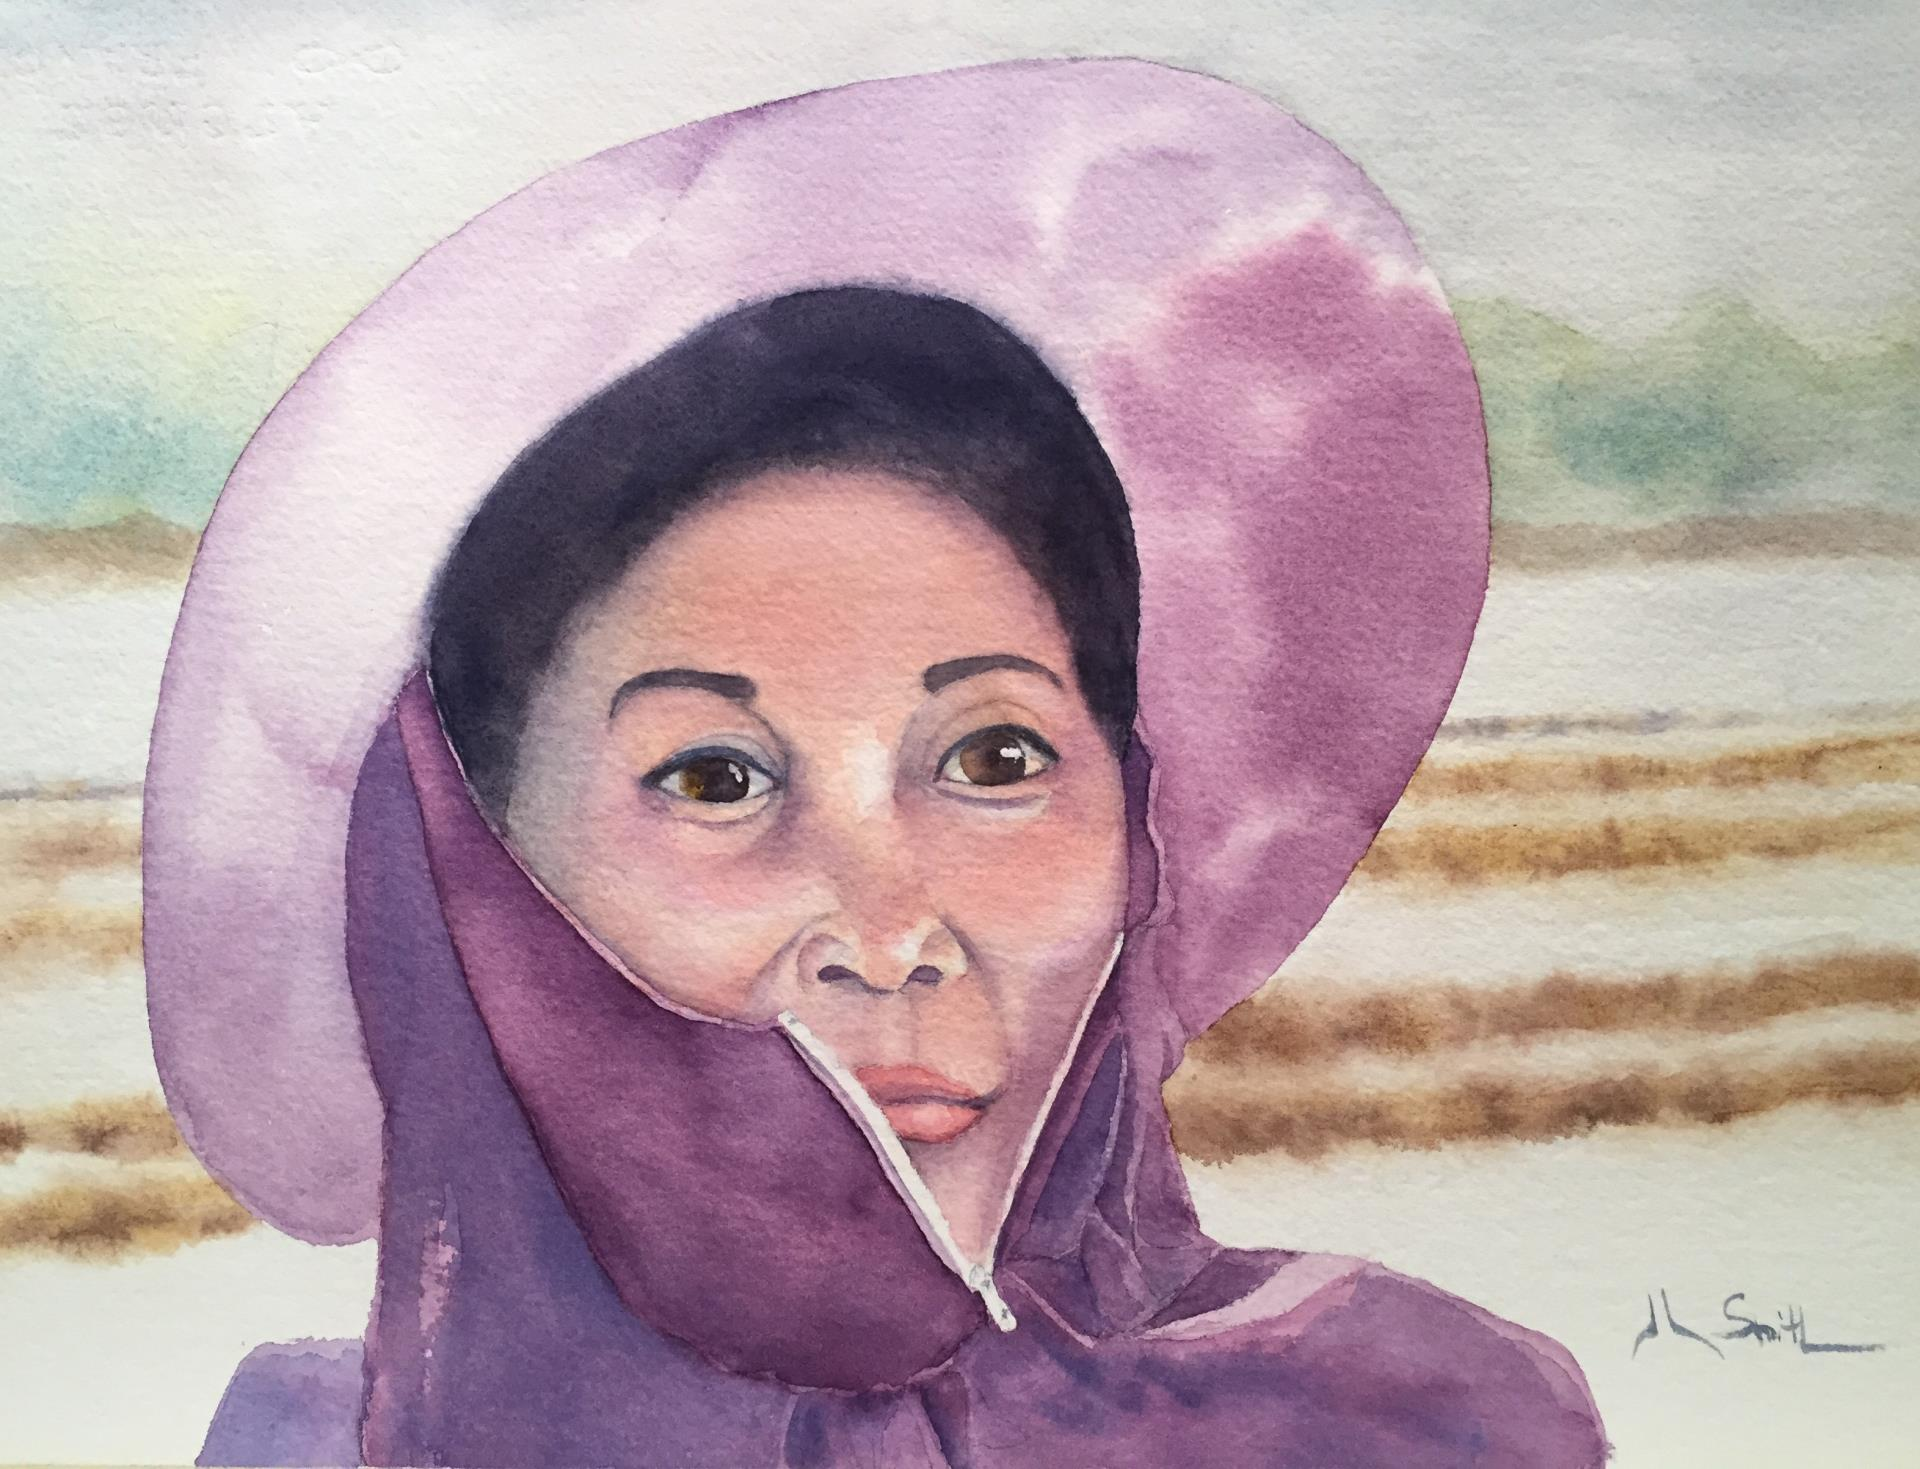 21a Jerre Smith - Thai Sea Salt Merchant - watercolor